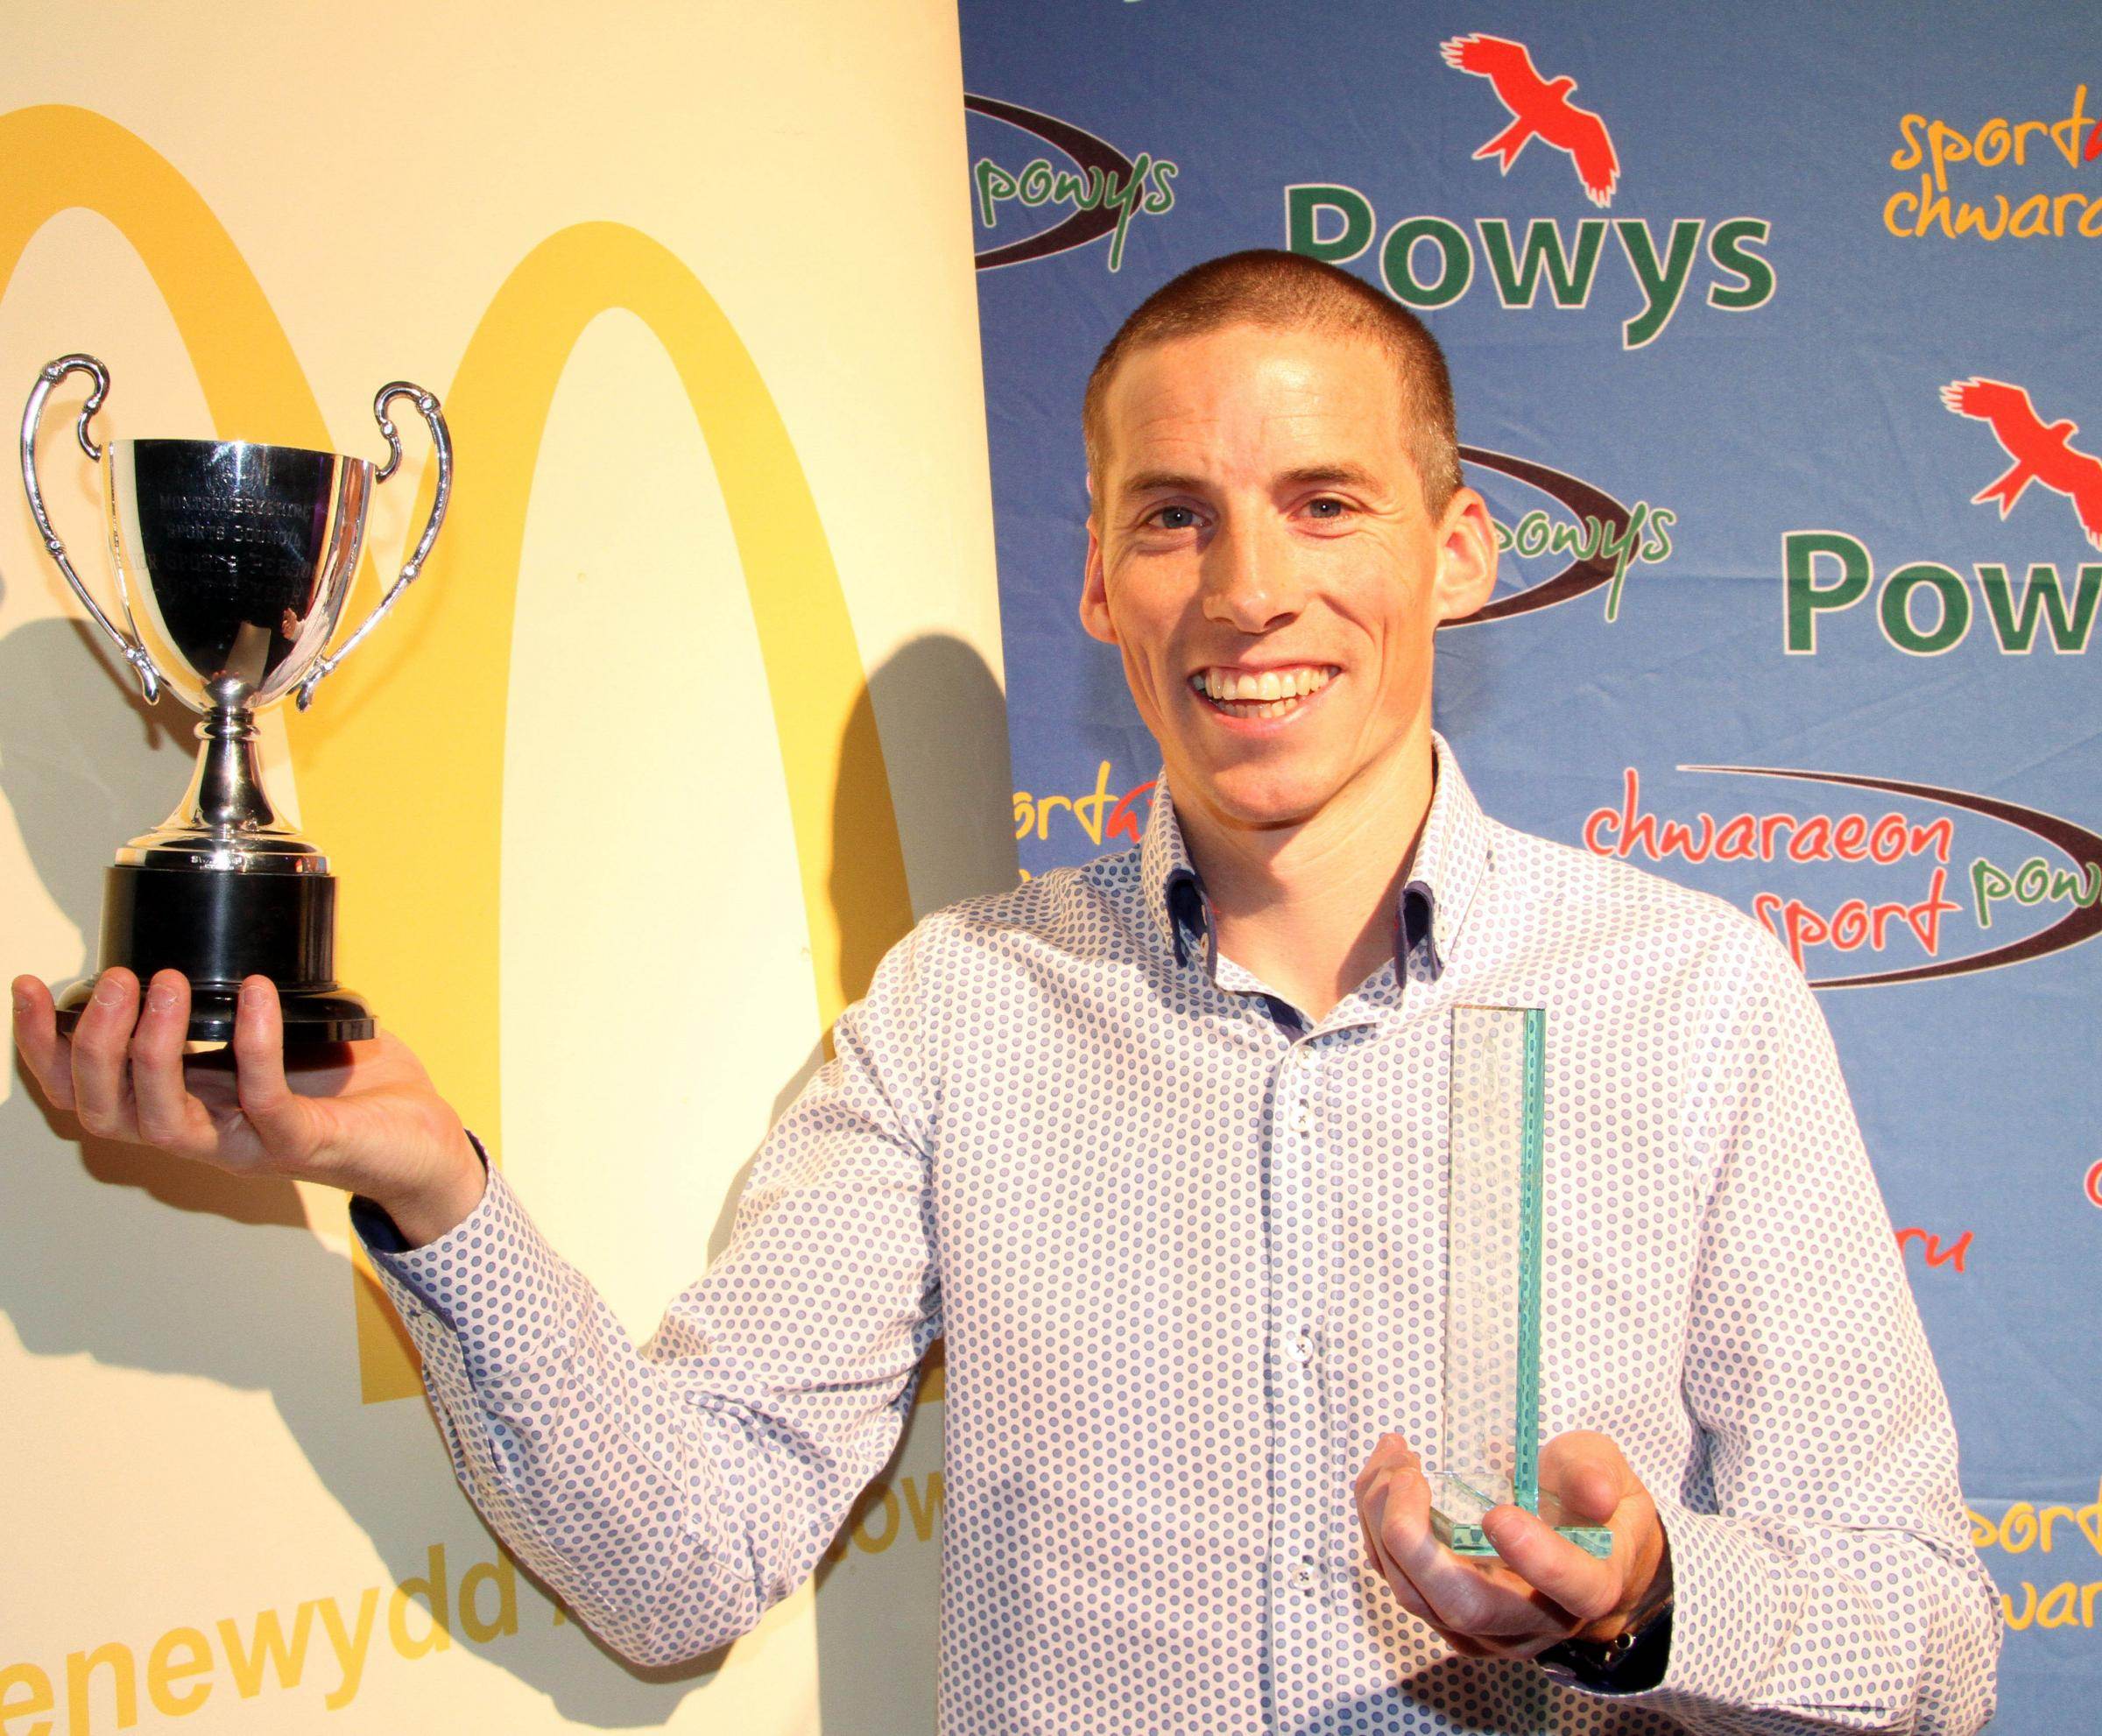 Montgomeryshire senior sports personality of the year is runner Andy Davies.